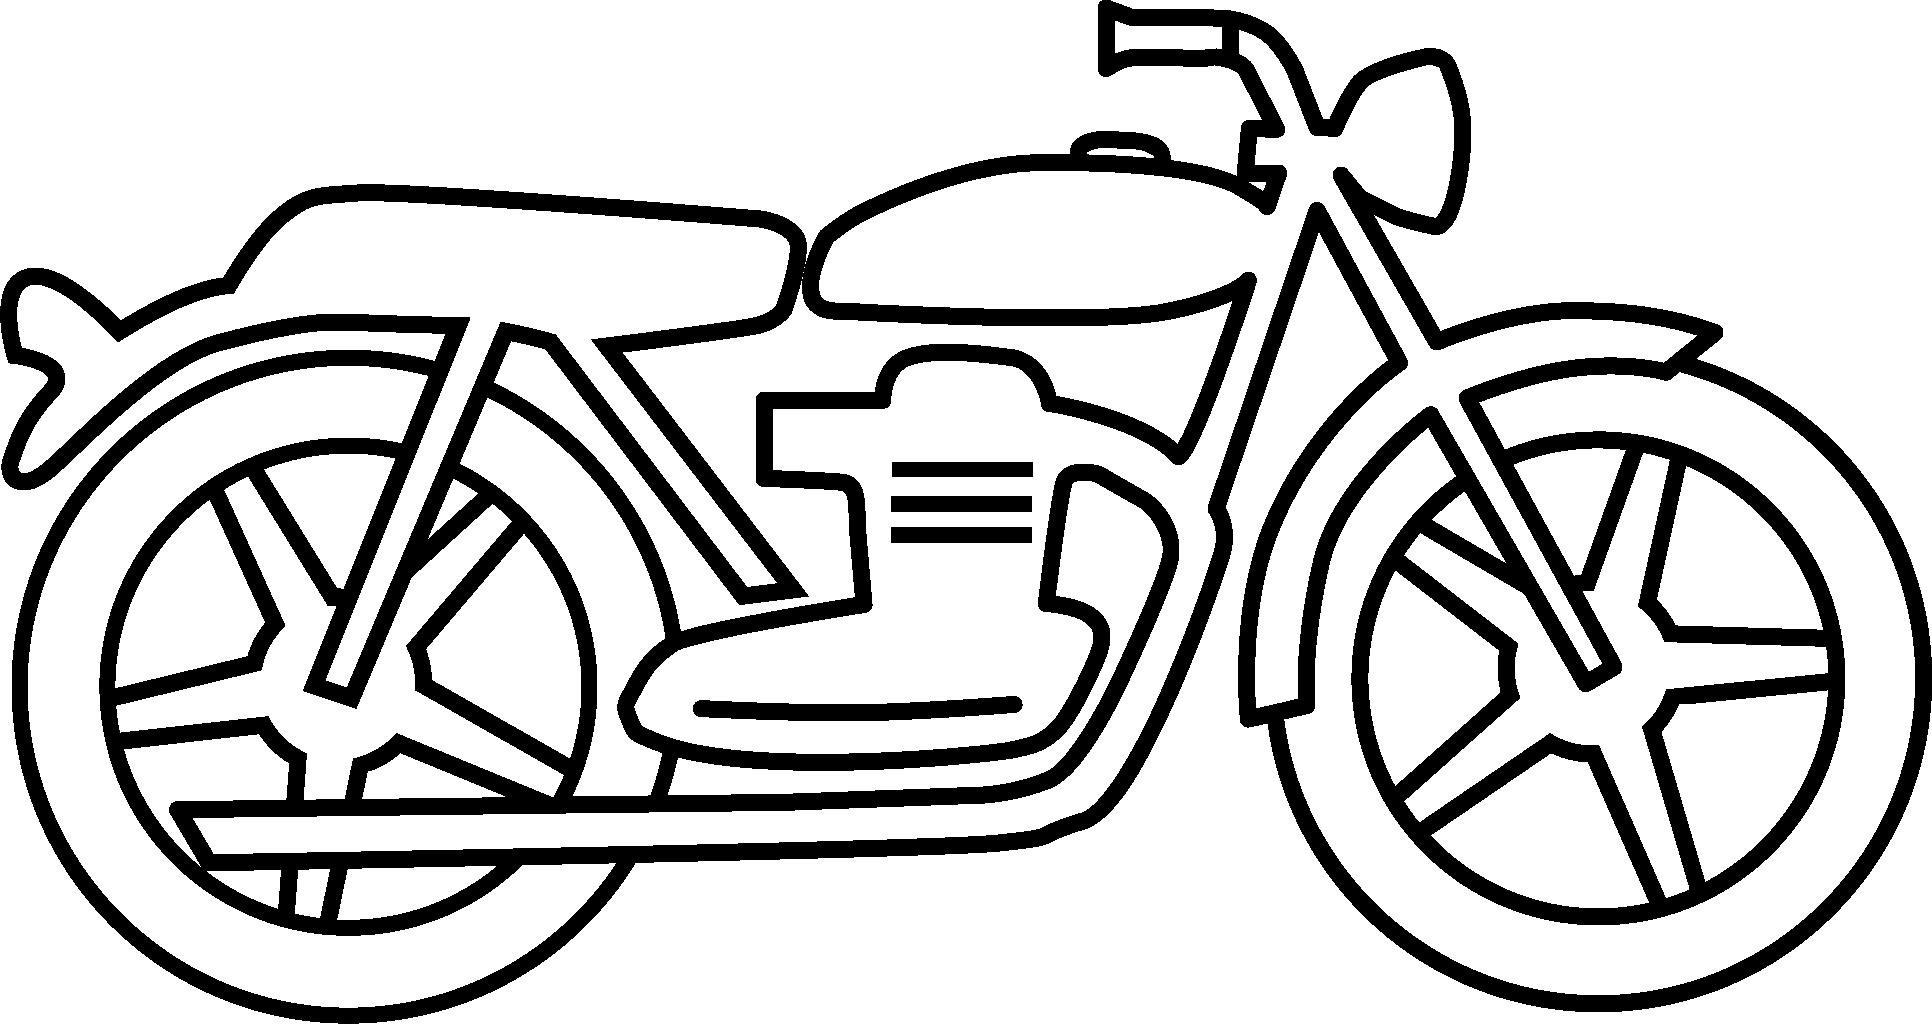 Free Motorcycle Clipart Black And White, Download Free Clip.